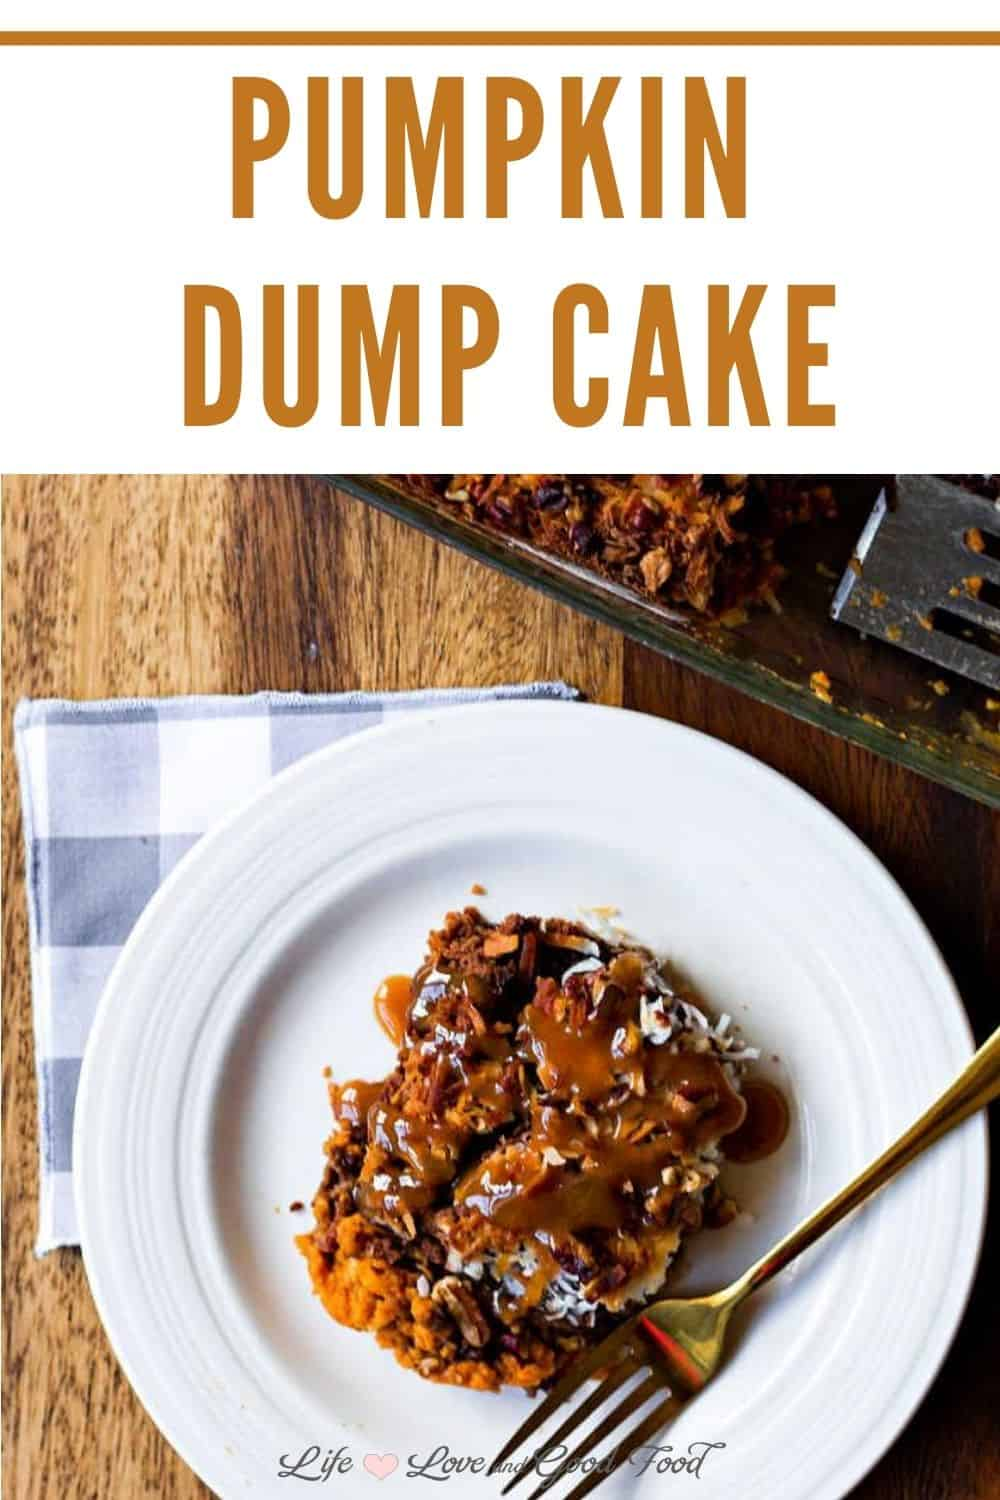 This yummy Fall dessert, German Chocolate Pumpkin Dump Cake, is a mash-up of pumpkin pie, chocolate cake, and a crunchy coconut and chopped pecan topping. Spoon it out and serve it up either warm or cold with a drizzle of caramel syrup, a scoop of vanilla ice cream, or homemade sweetened whipped cream or cool whip.